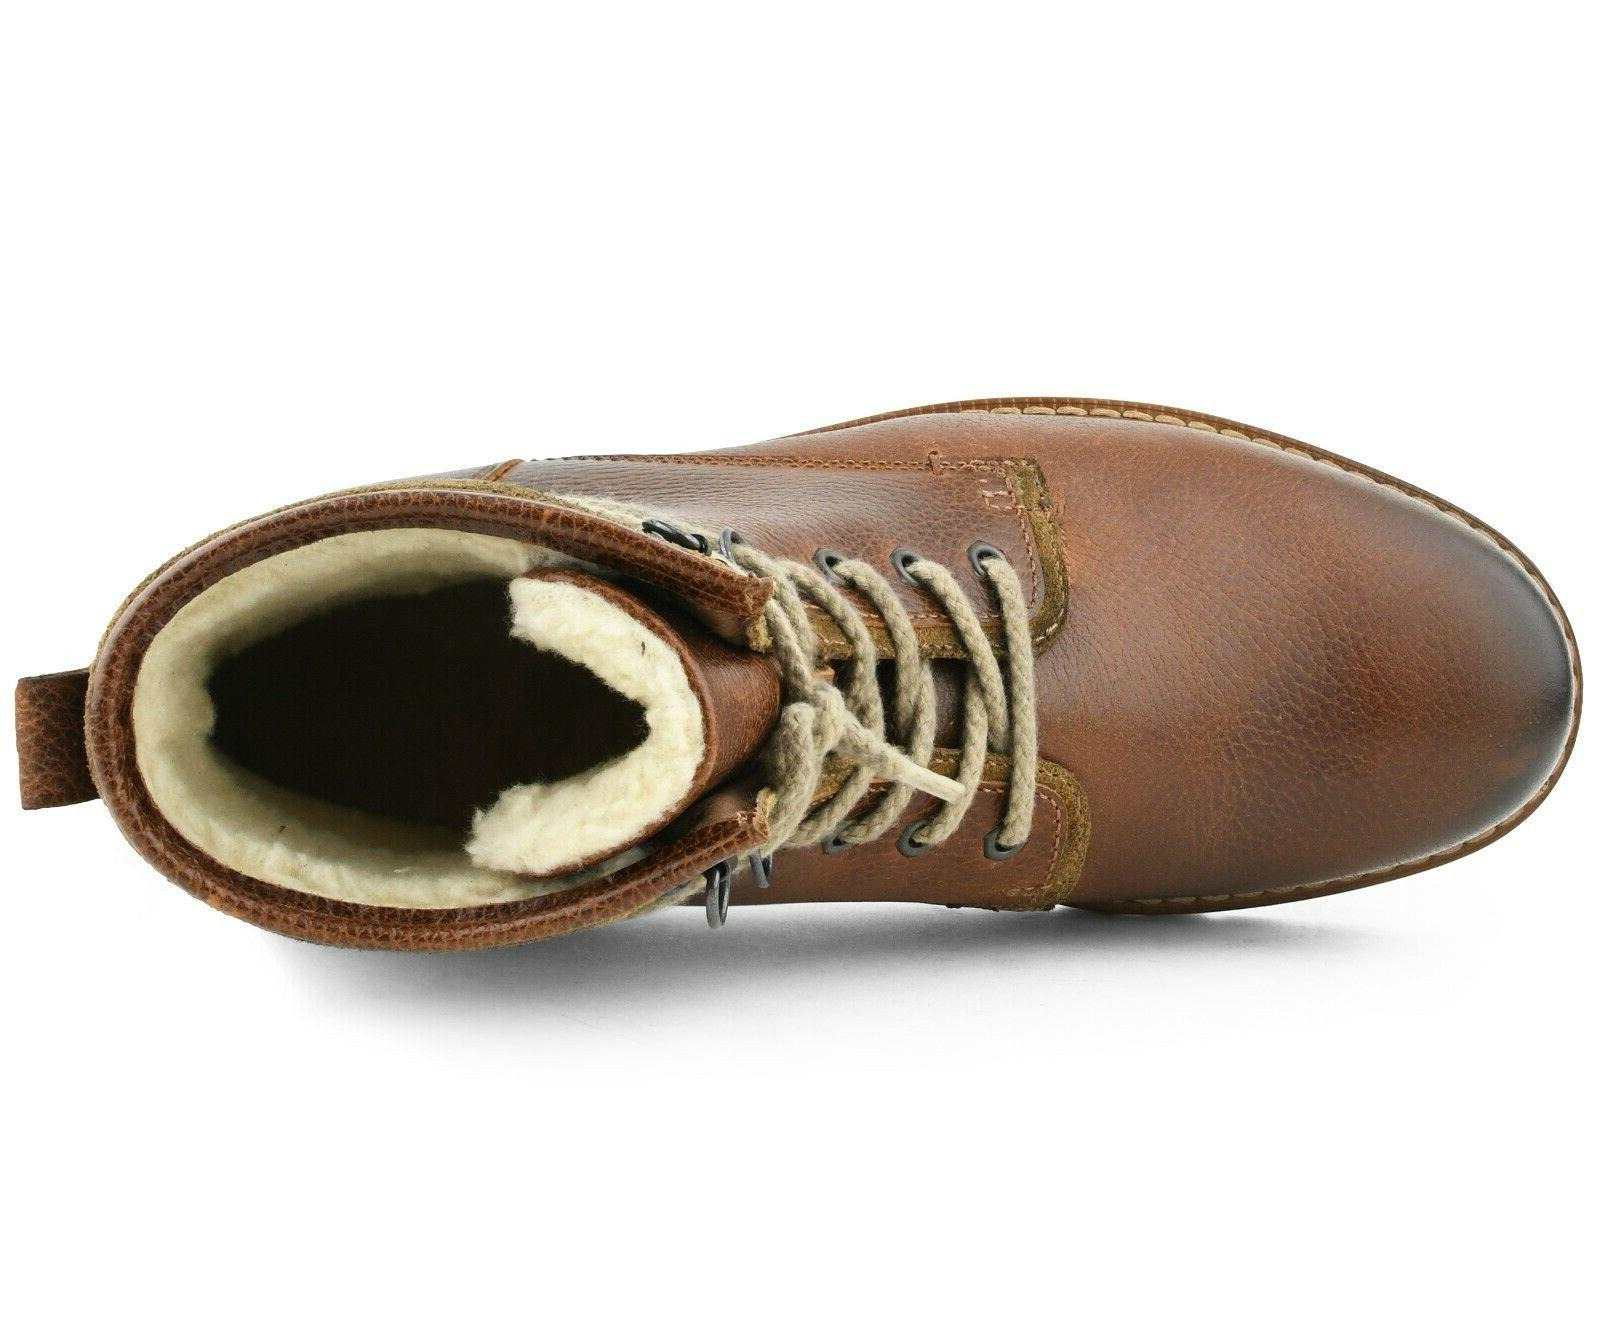 Genuine Leather Lace-Up Boots for Men, Work